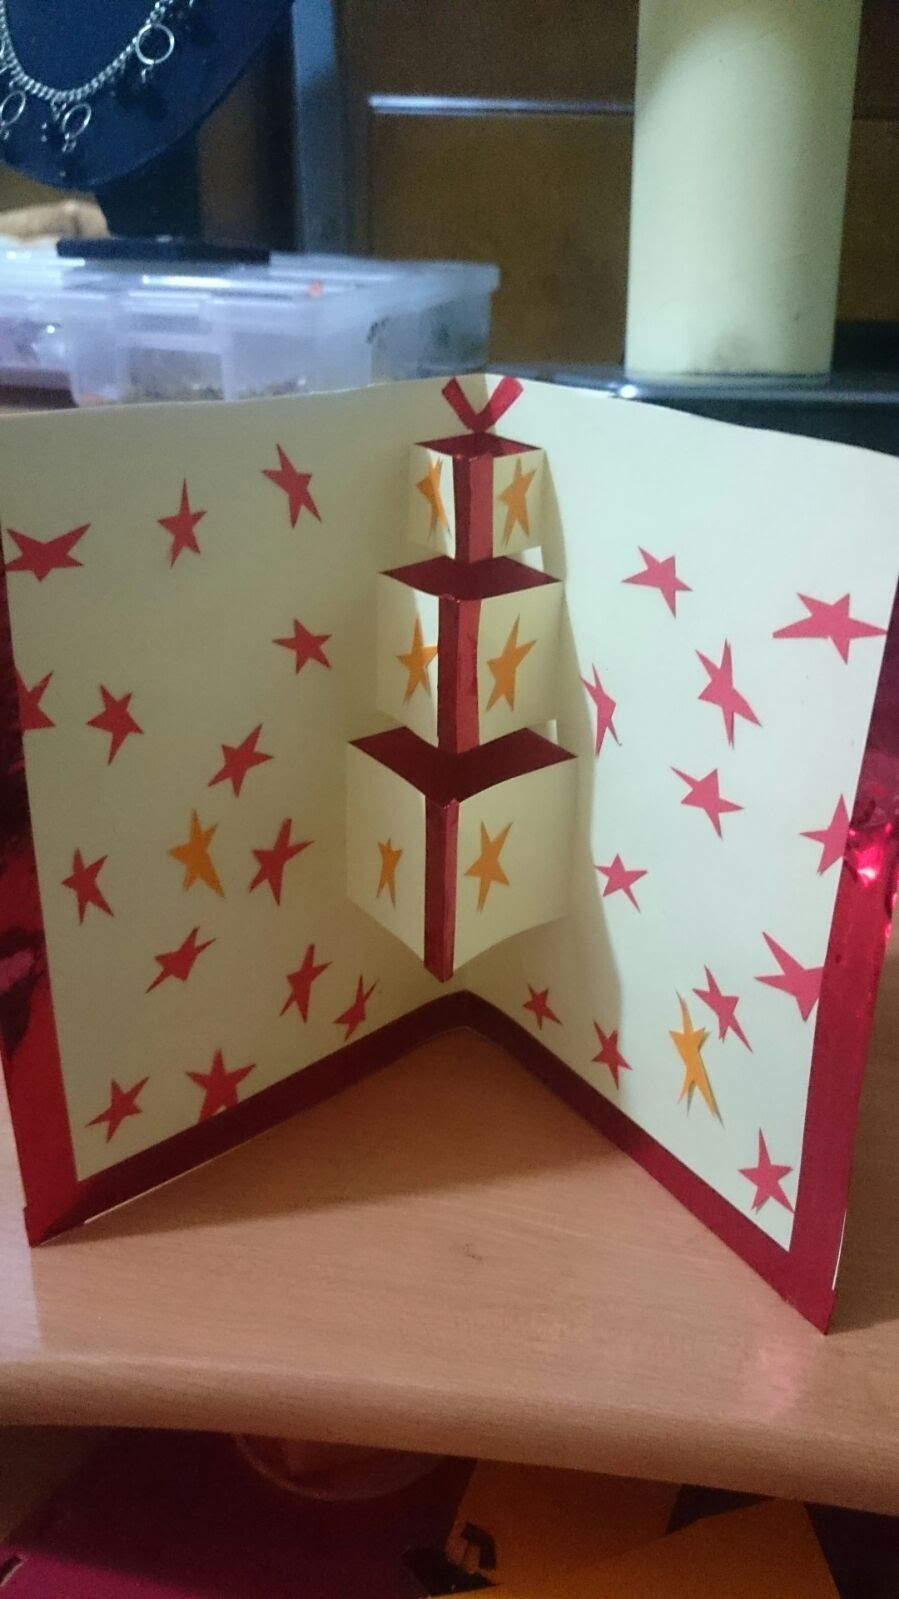 How to make a pop up birthday greeting card how to make a pop up how to make a pop up birthday greeting card how to make a pop up birth m4hsunfo